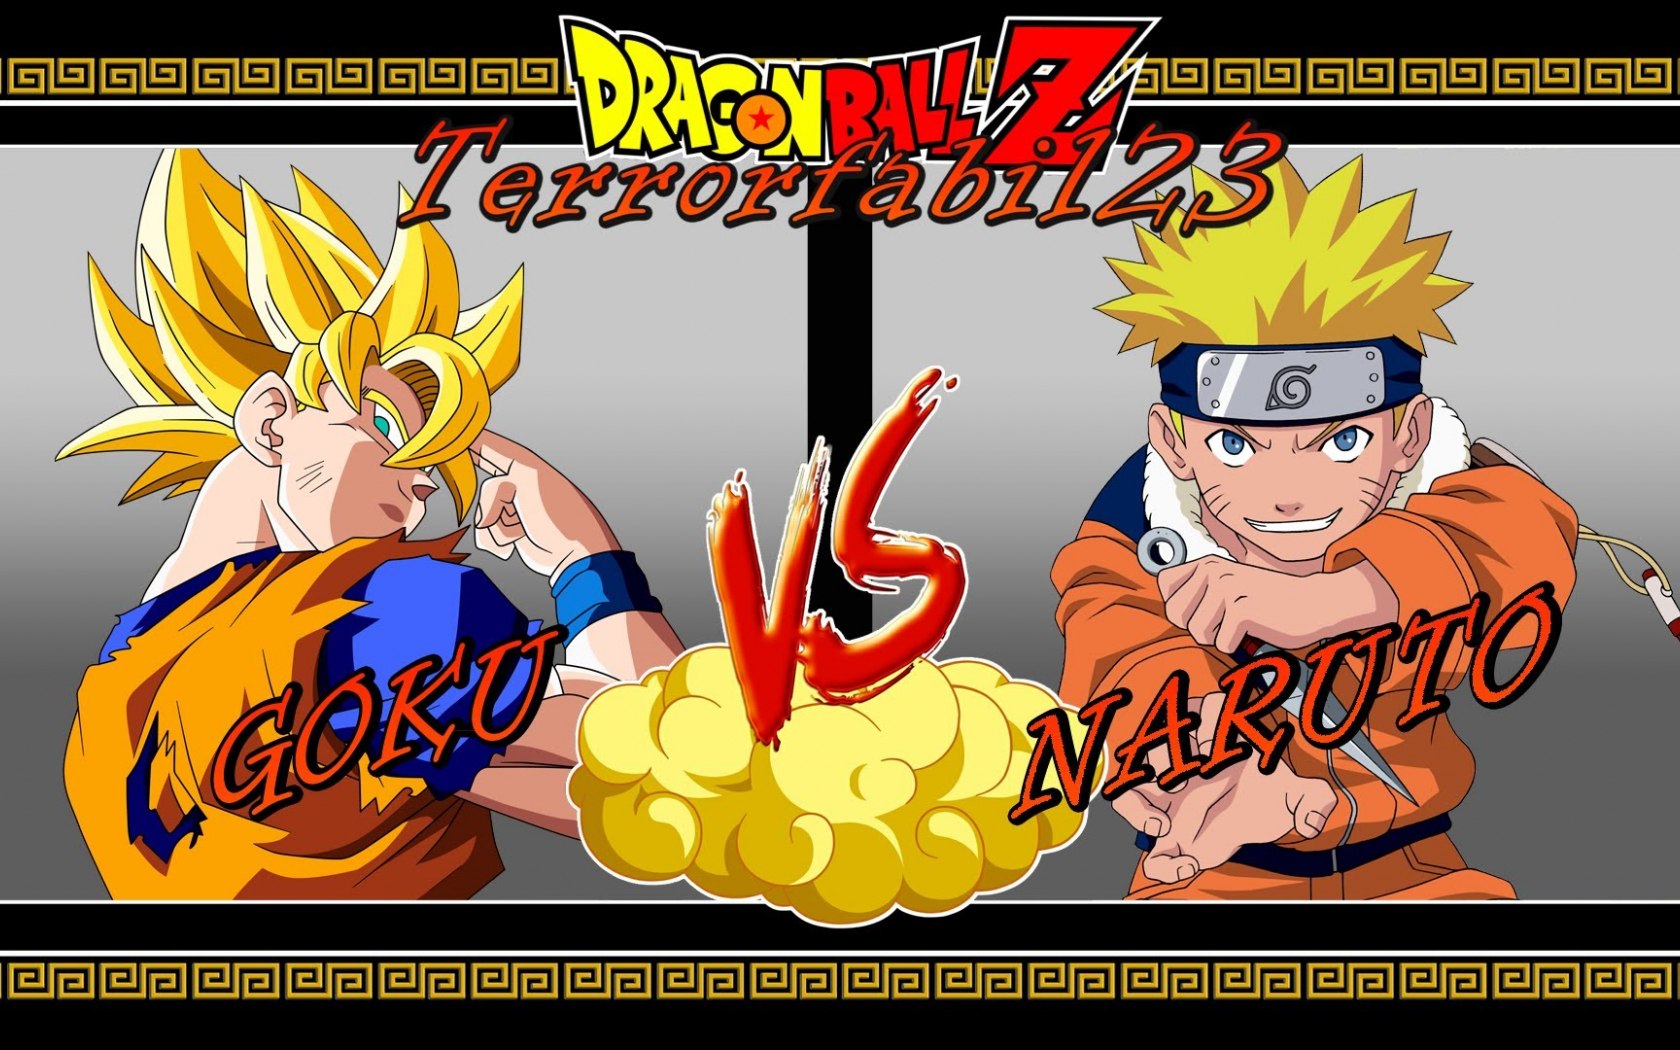 Free Download Browse Our New Gallery Of Son Goku Naruto Hd Wallpapers To 1920x1080 For Your Desktop Mobile Tablet Explore 77 Goku And Naruto Wallpaper Kid Goku Wallpaper Goku